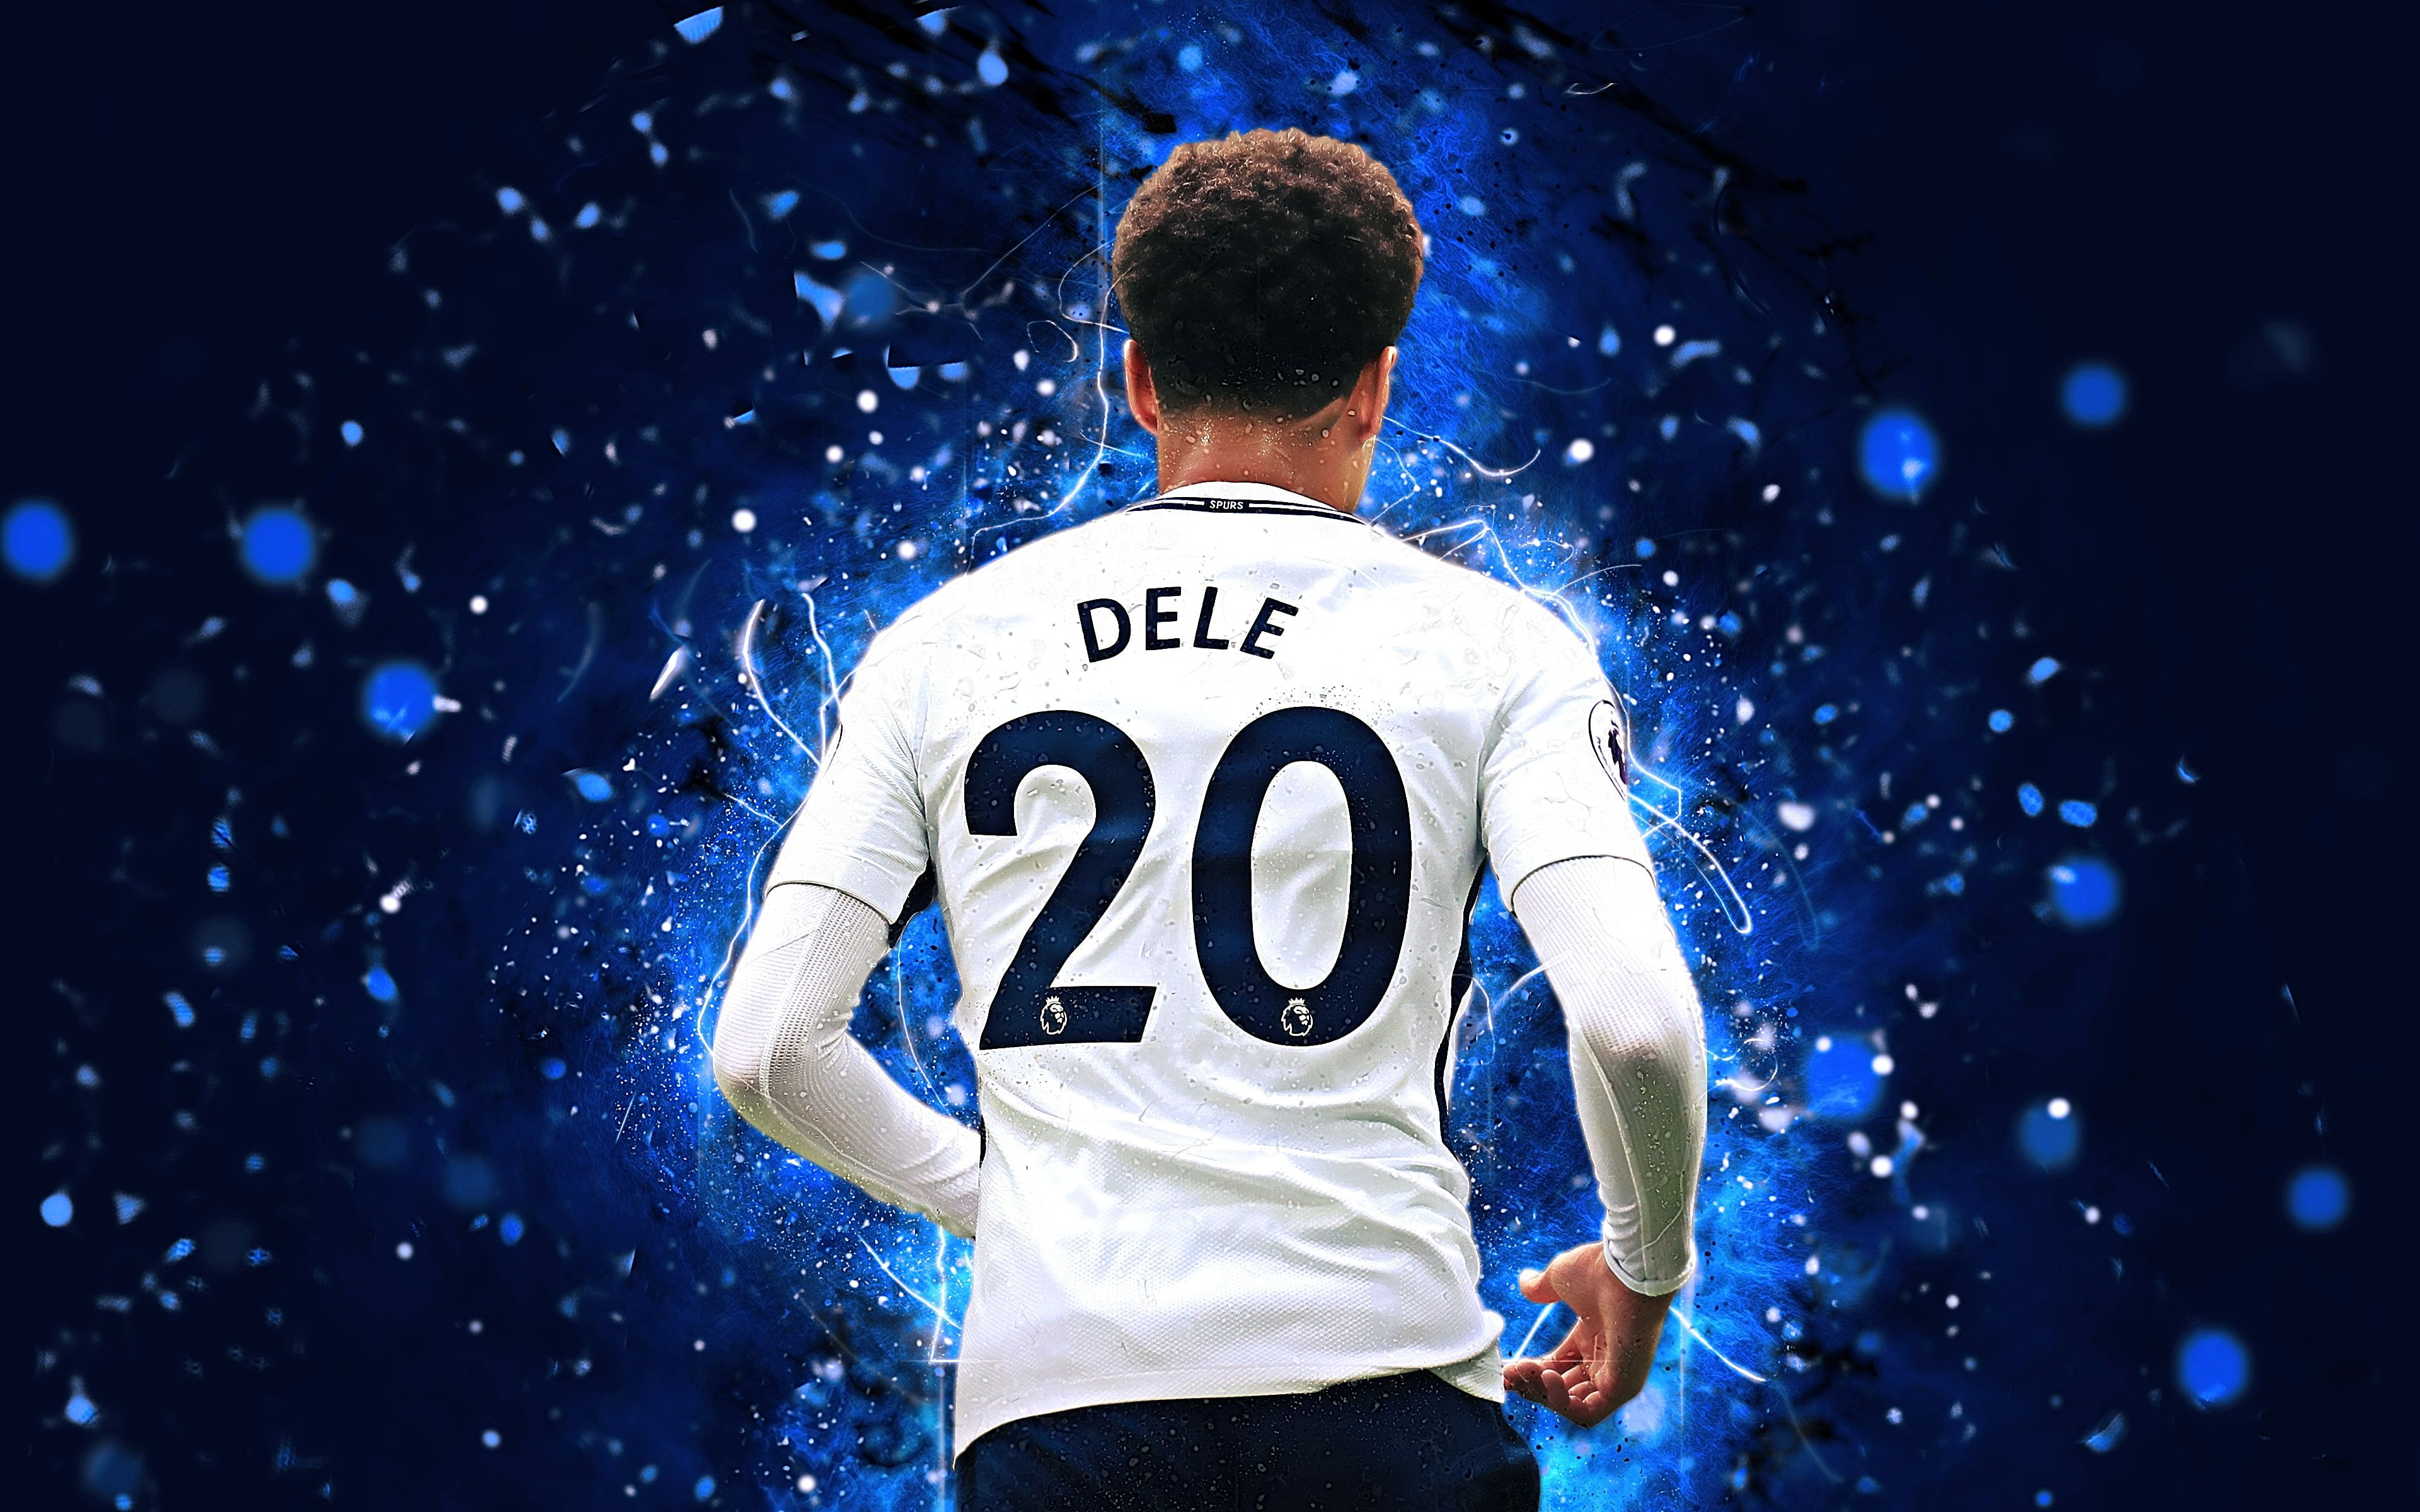 Pin on Dele